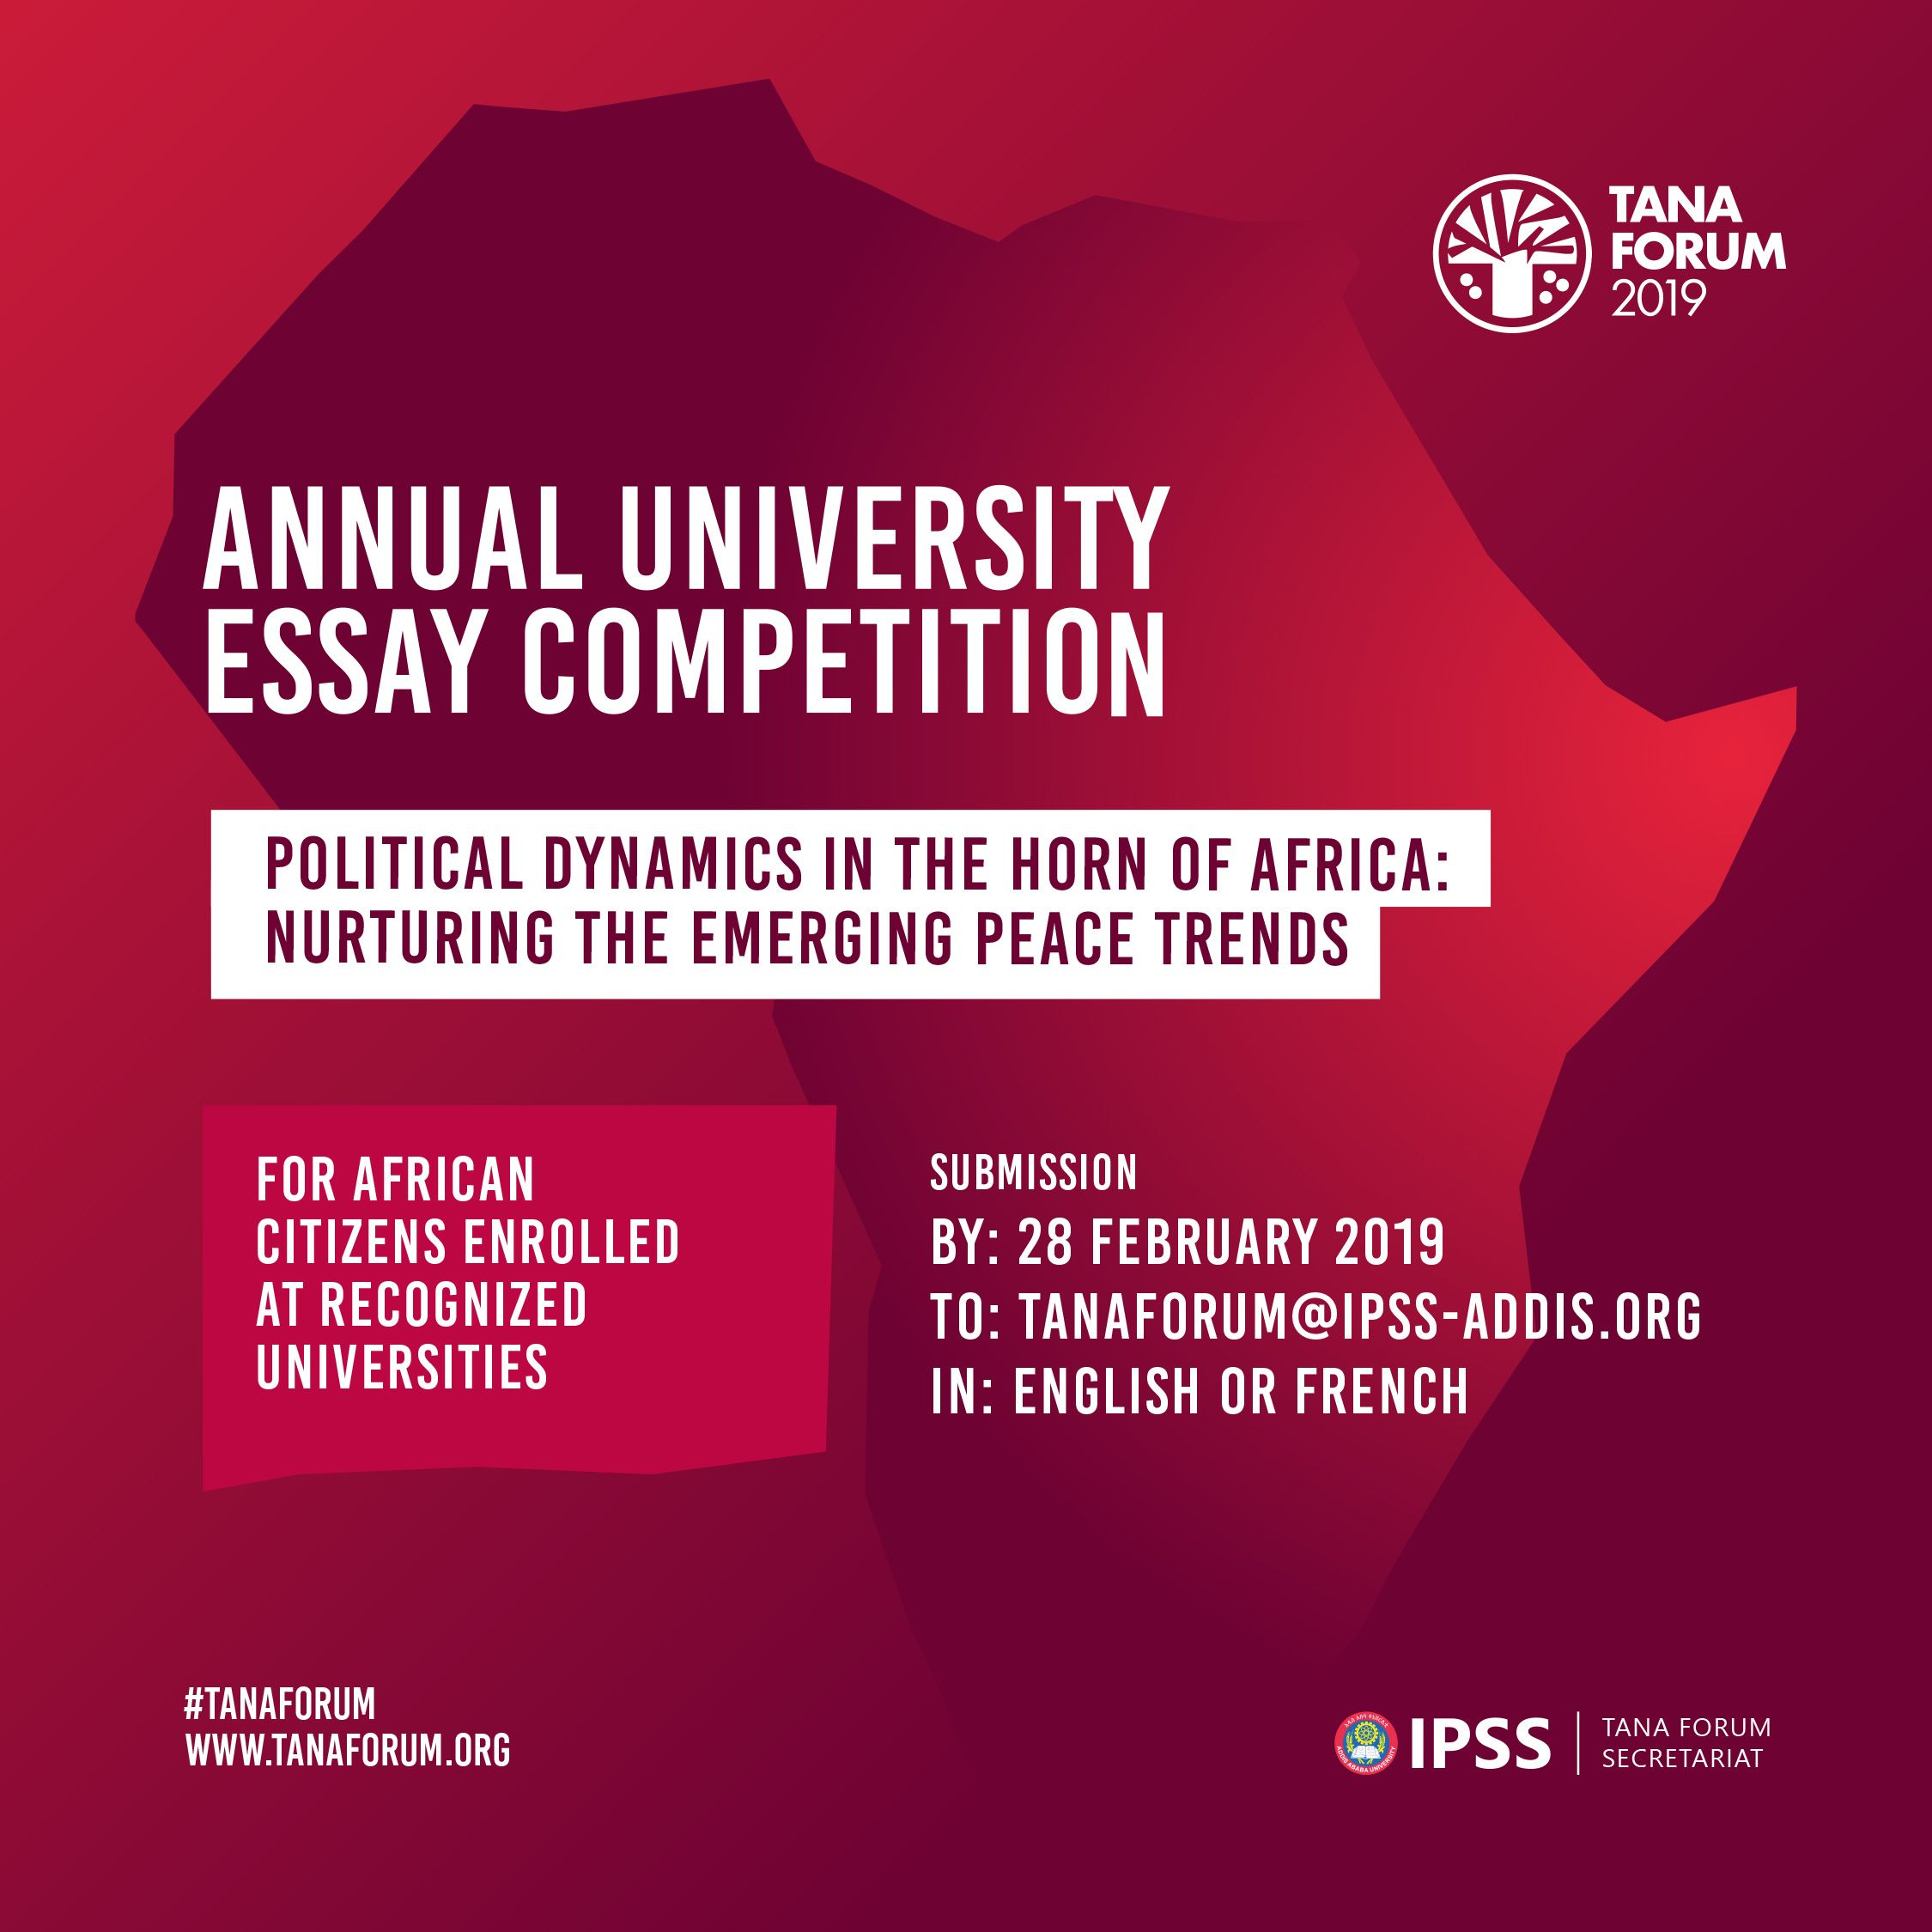 Simple Essays For High School Students Tana Forum University Essay Competition  For African Students  After  School Africa Compare Contrast Essay Papers also Essay For High School Application Tana Forum University Essay Competition  For African Students  Essay Paper Generator